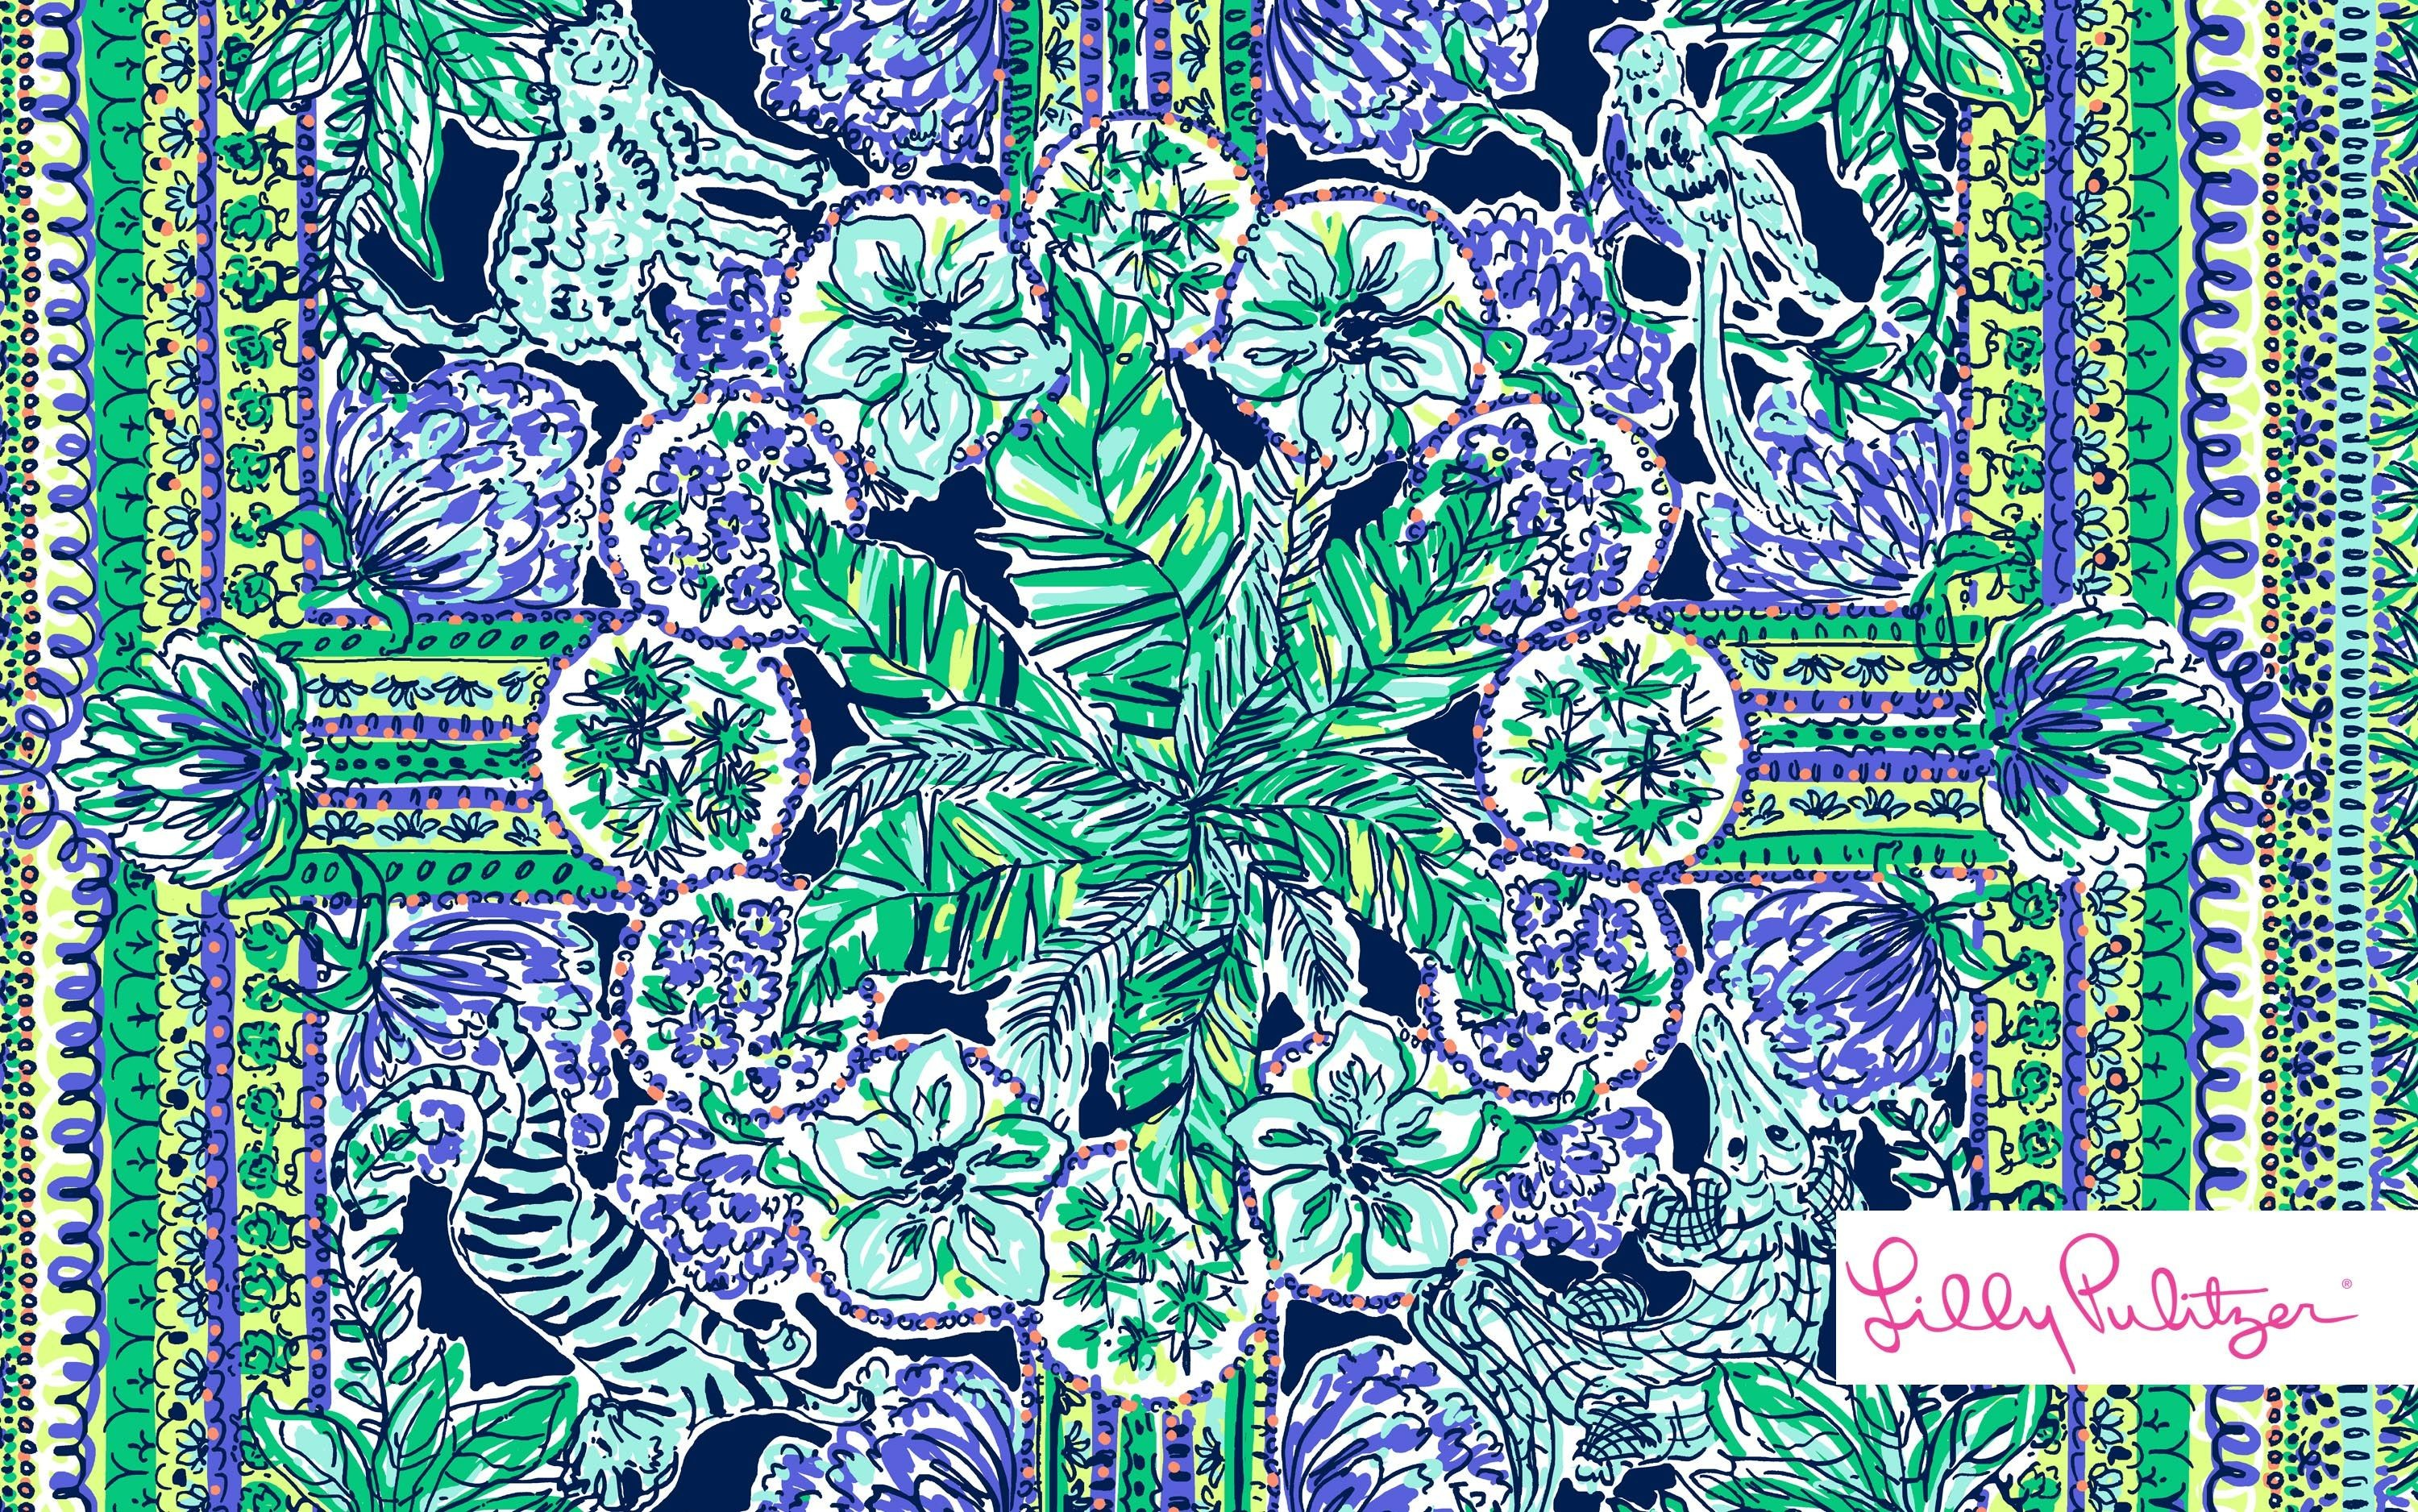 Res: 3000x1876, Lilly Pulitzer Palm Tree - wallpaper.